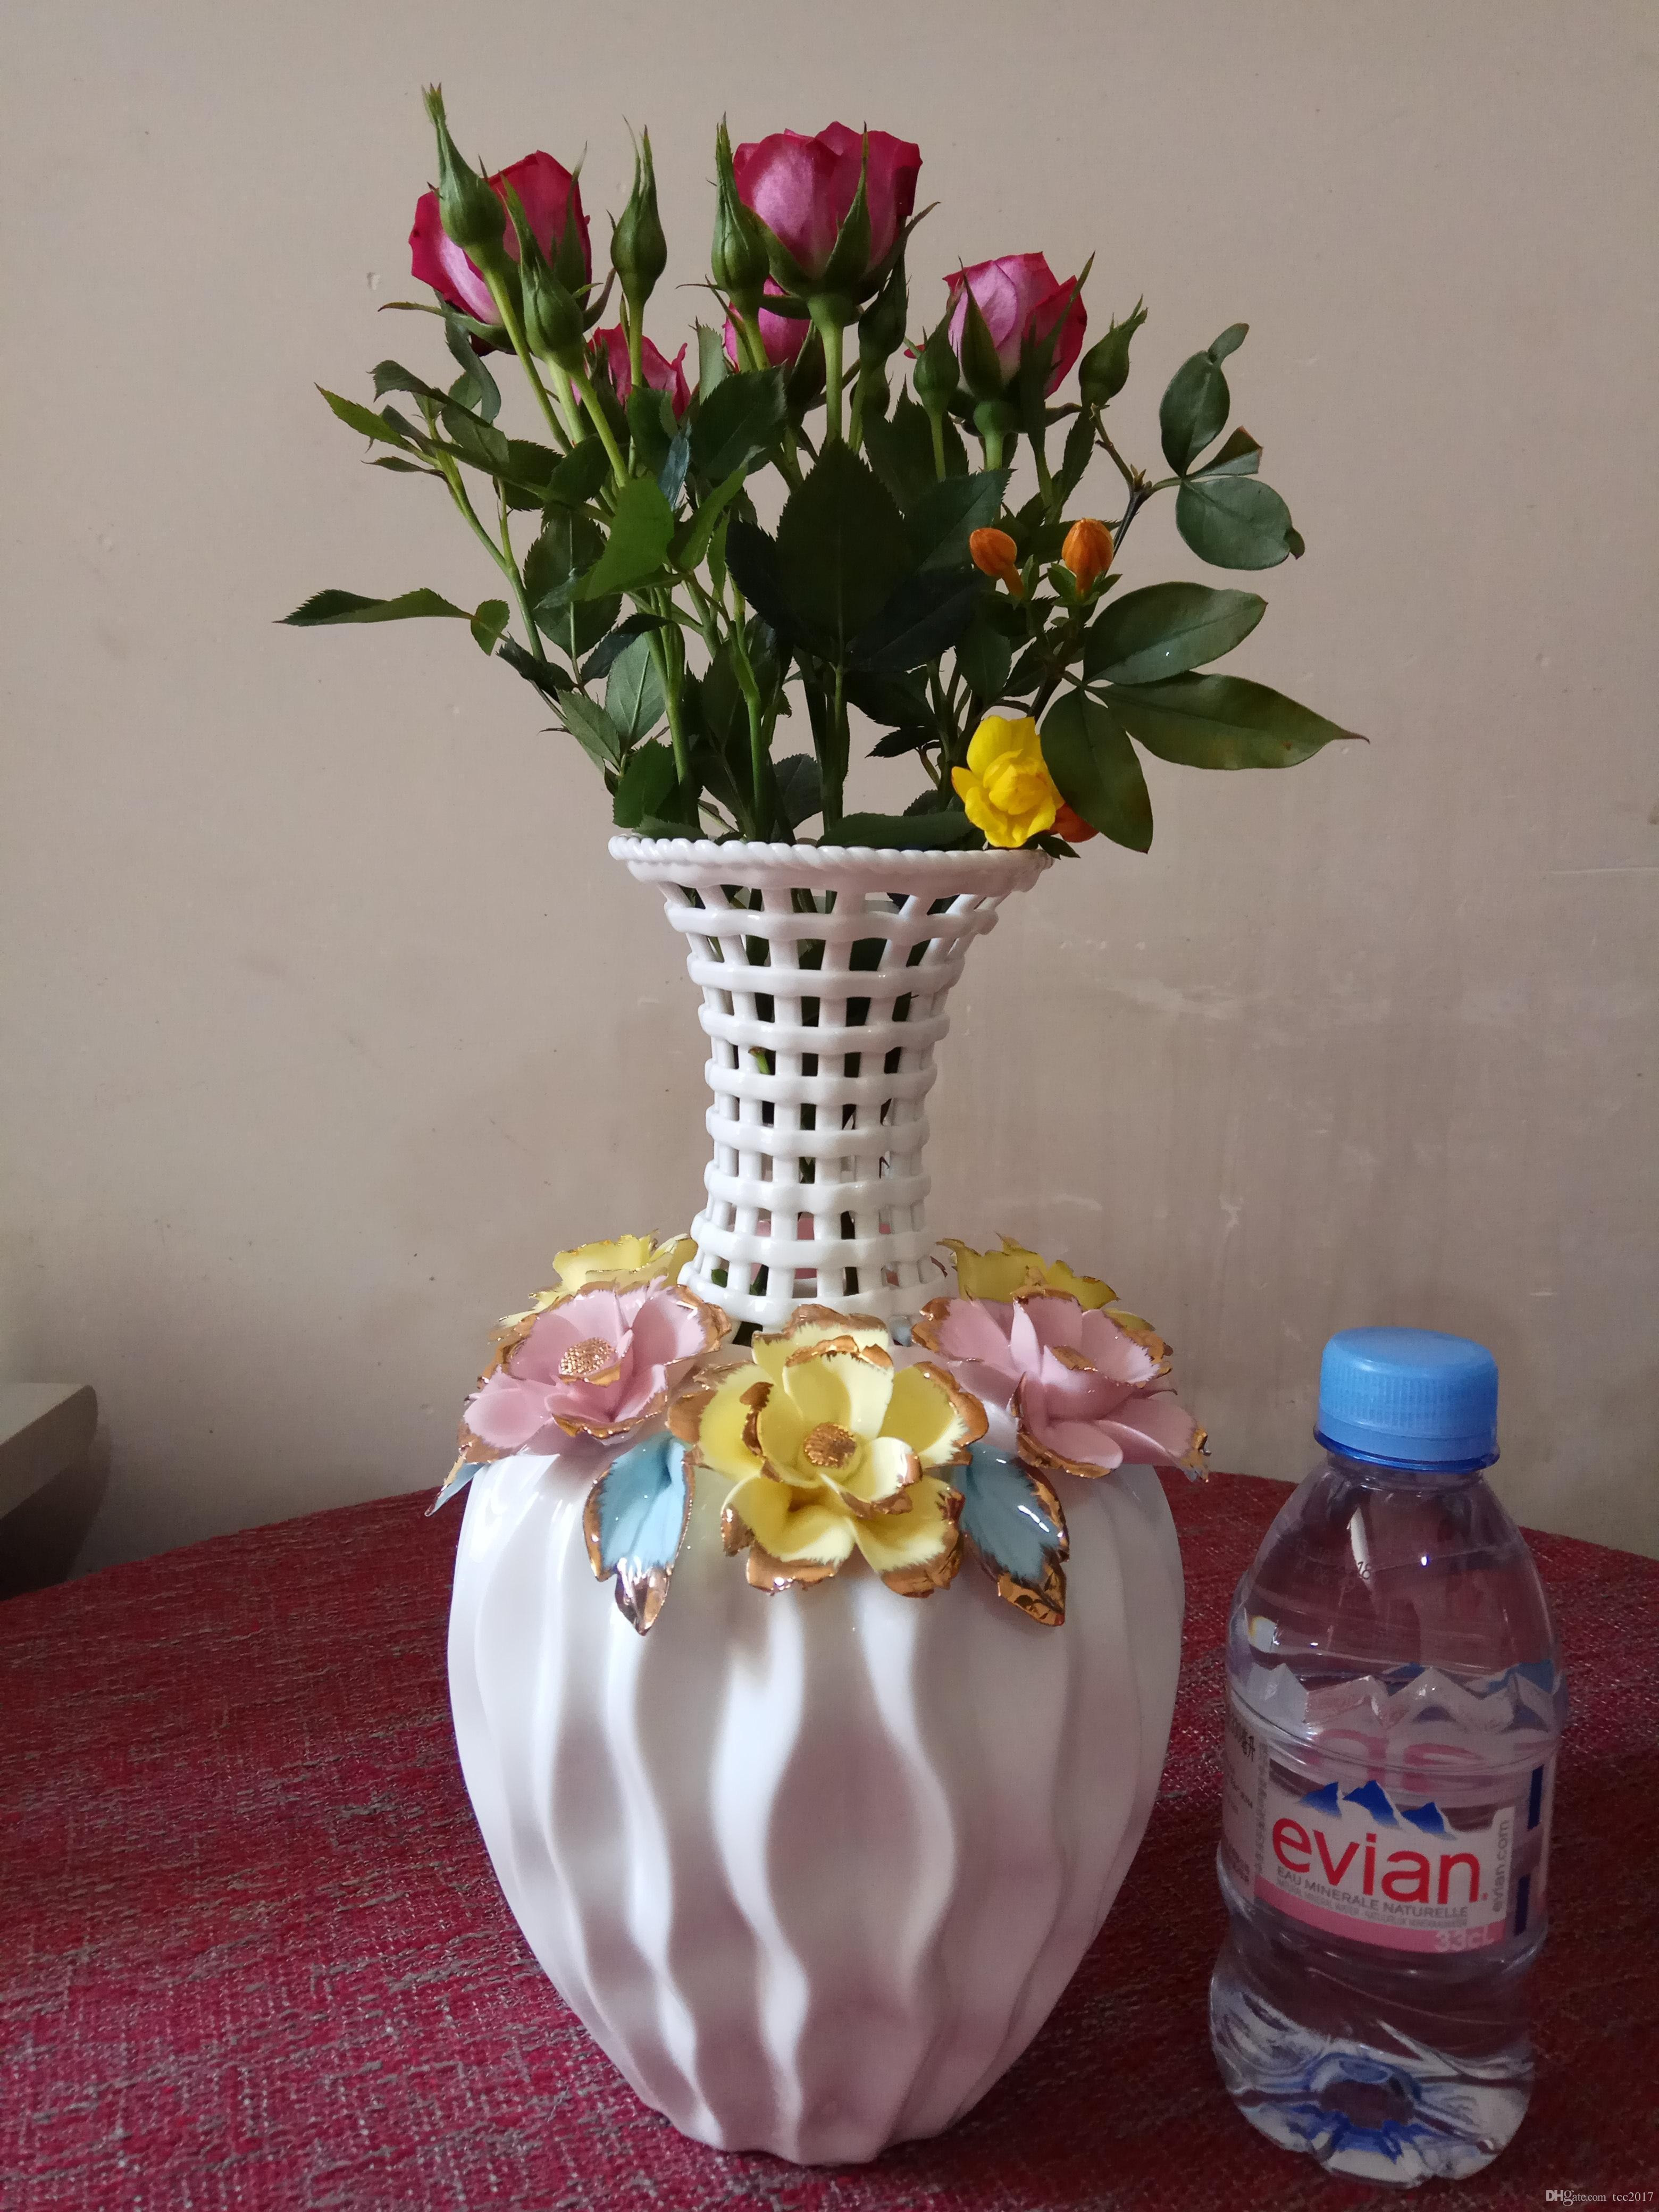 silver vases wholesale of 46 inspirational images of living rooms image living room decor ideas with cheap wedding flowers living room bouquet vase unique cheap glass vases 1h vasesi 0d